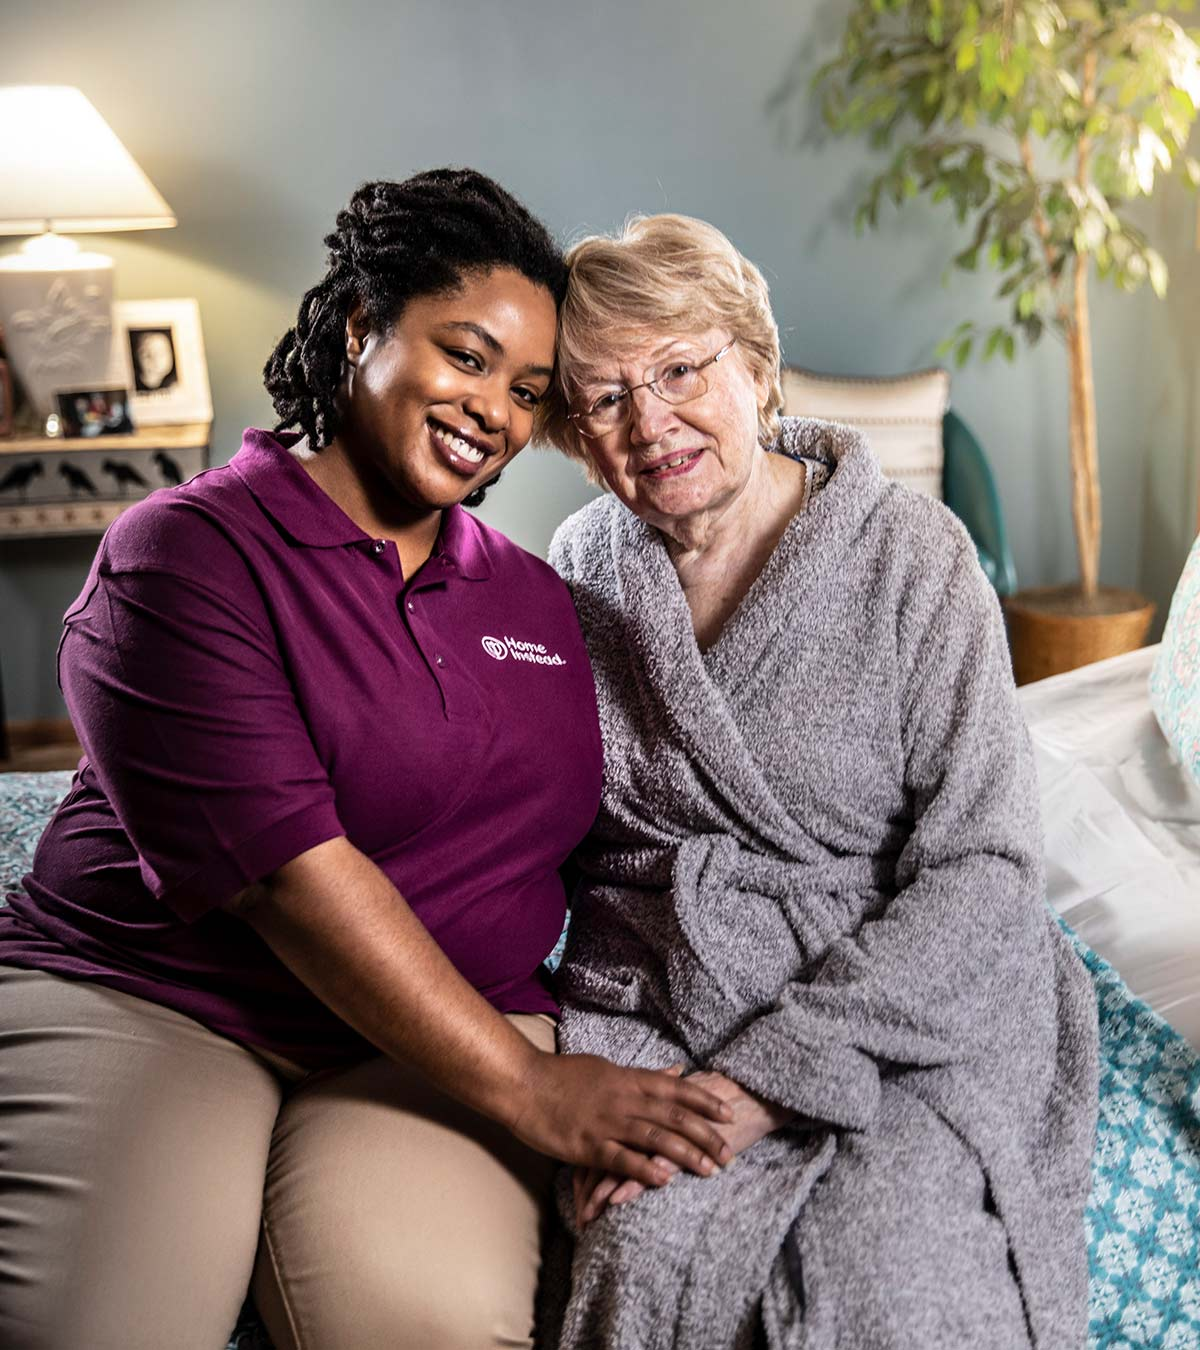 Home Instead CAREGiver and senior sitting on bed smiling